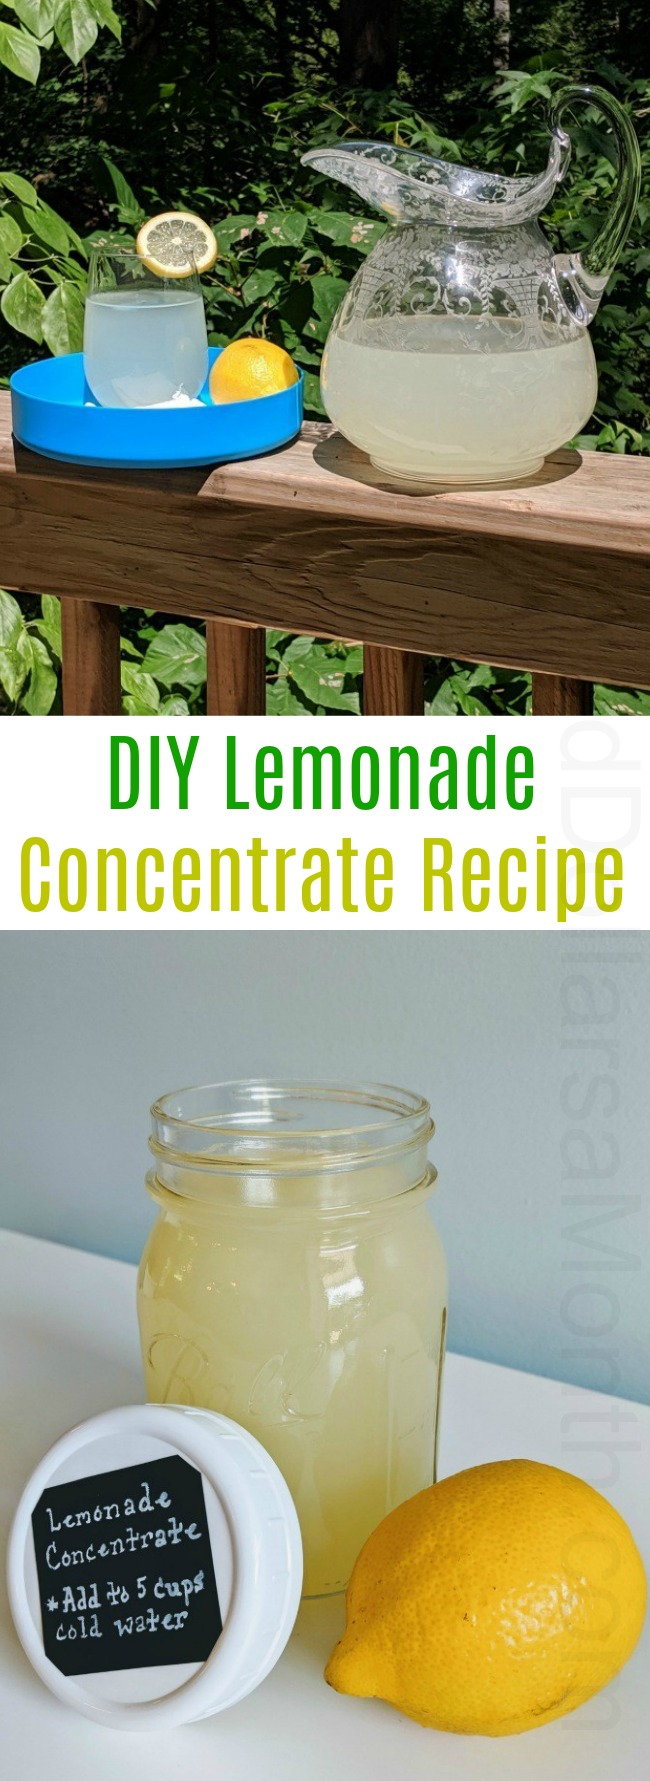 Mel's DIY Lemonade Concentrate Recipe